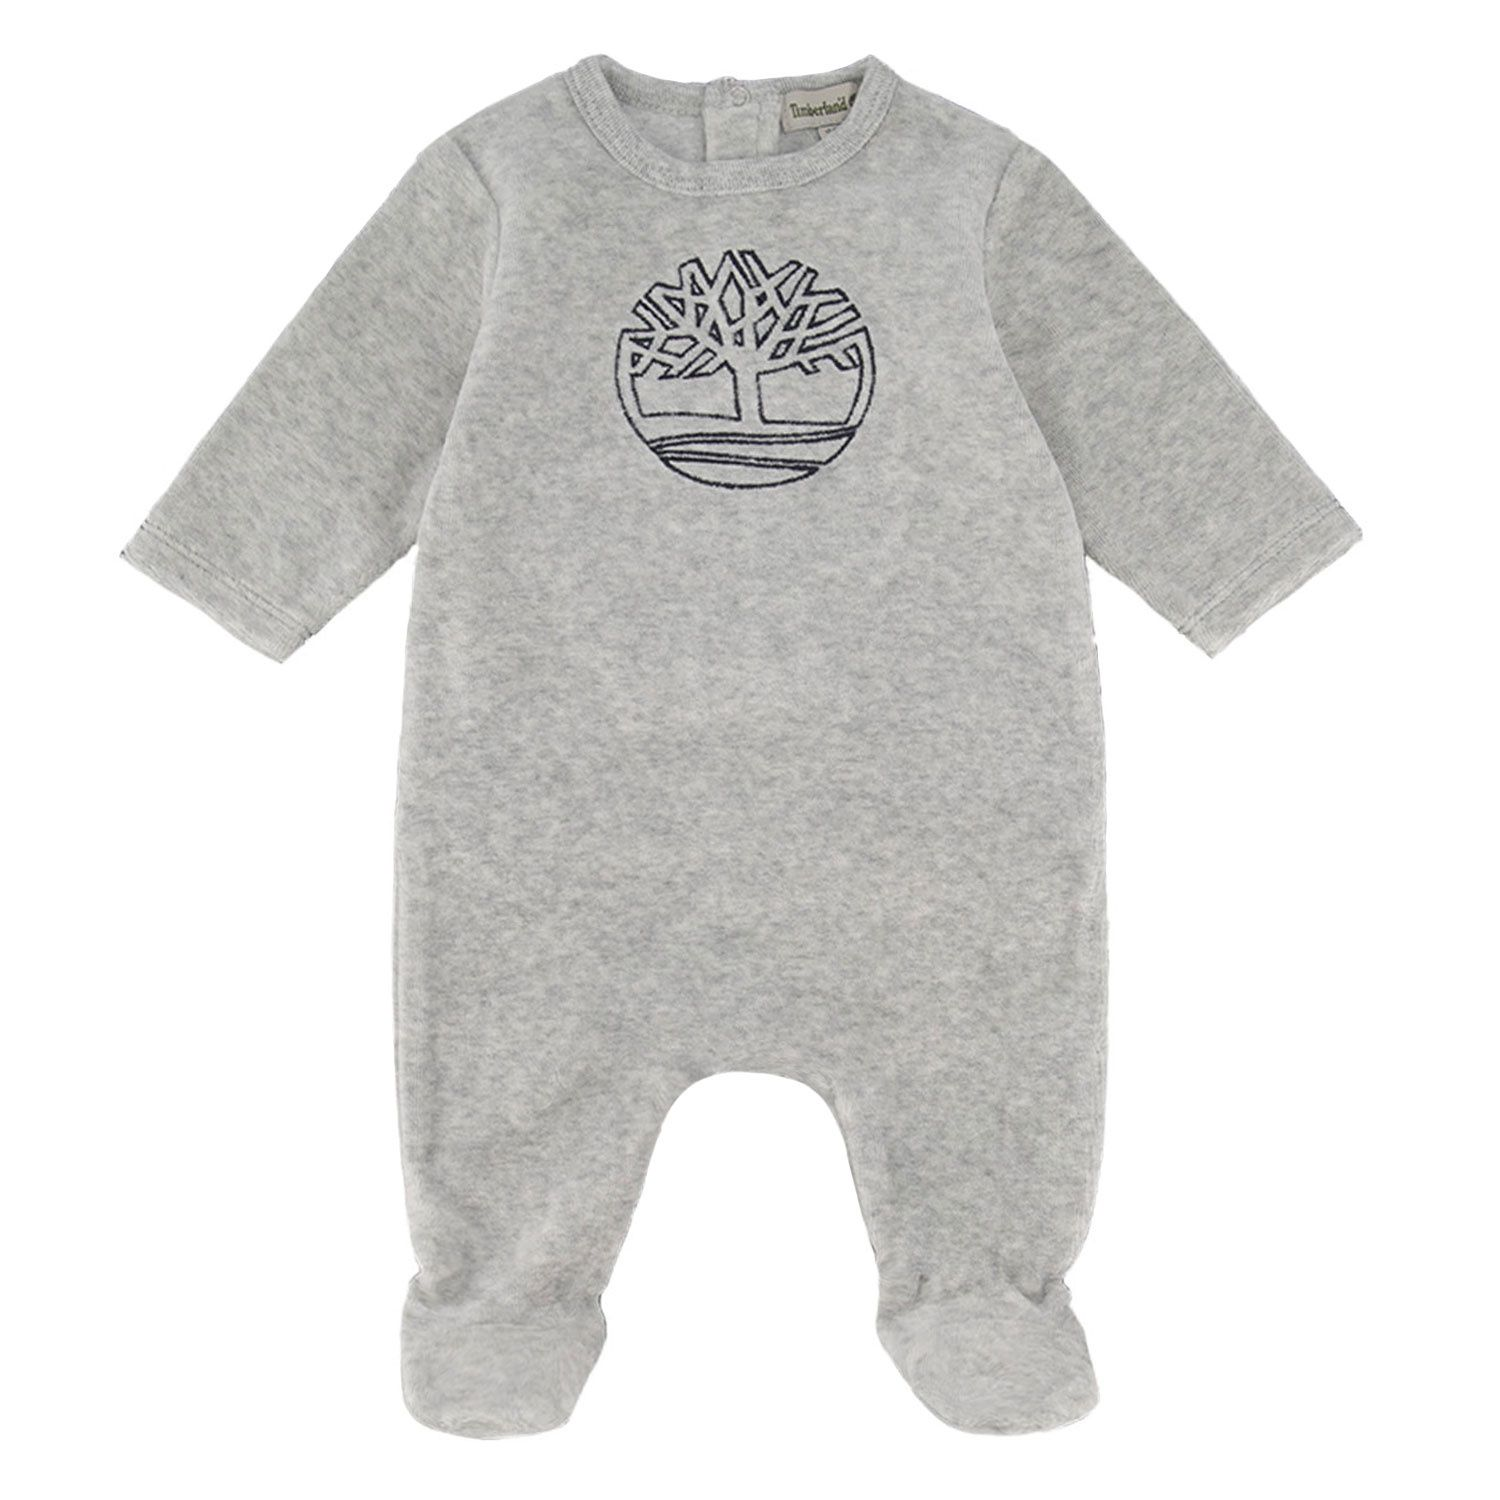 Picture of Timberland T97337 baby playsuit light gray